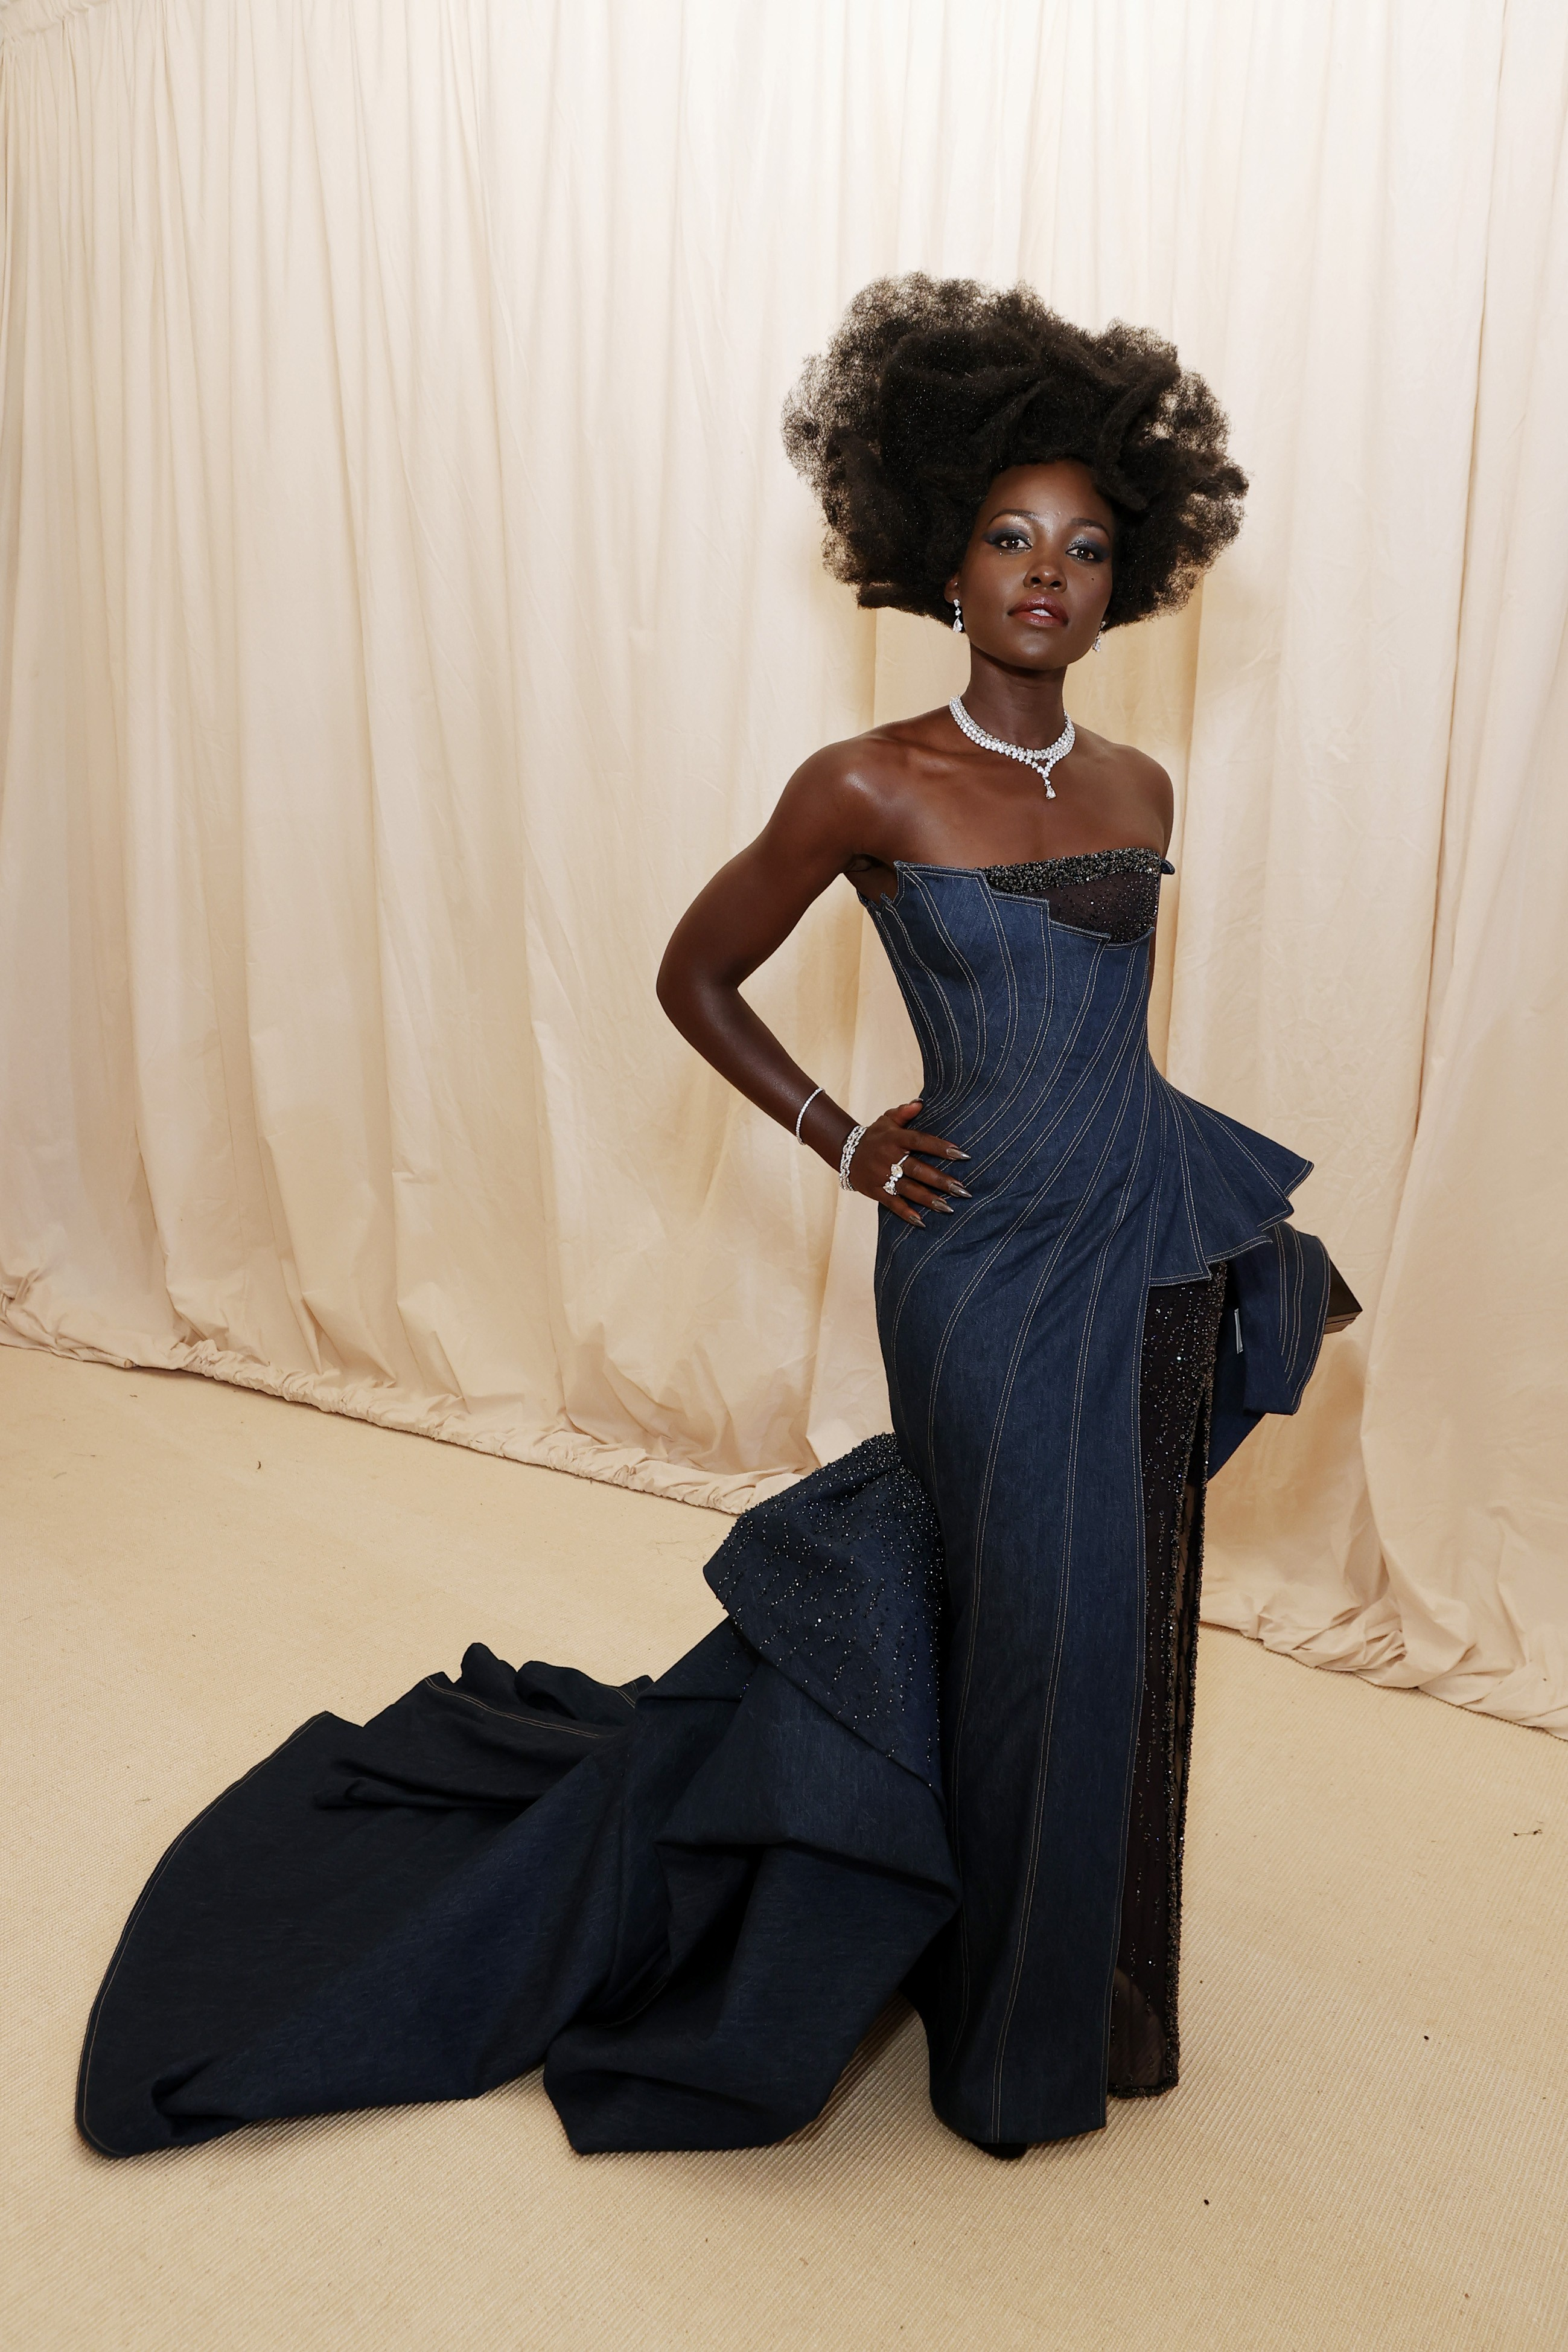 NEW YORK, NEW YORK - SEPTEMBER 13: Lupita Nyong'o attends The 2021 Met Gala Celebrating In America: A Lexicon Of Fashion at Metropolitan Museum of Art on September 13, 2021 in New York City. (Photo by Arturo Holmes/MG21/Getty Images) (Foto: Getty Images)